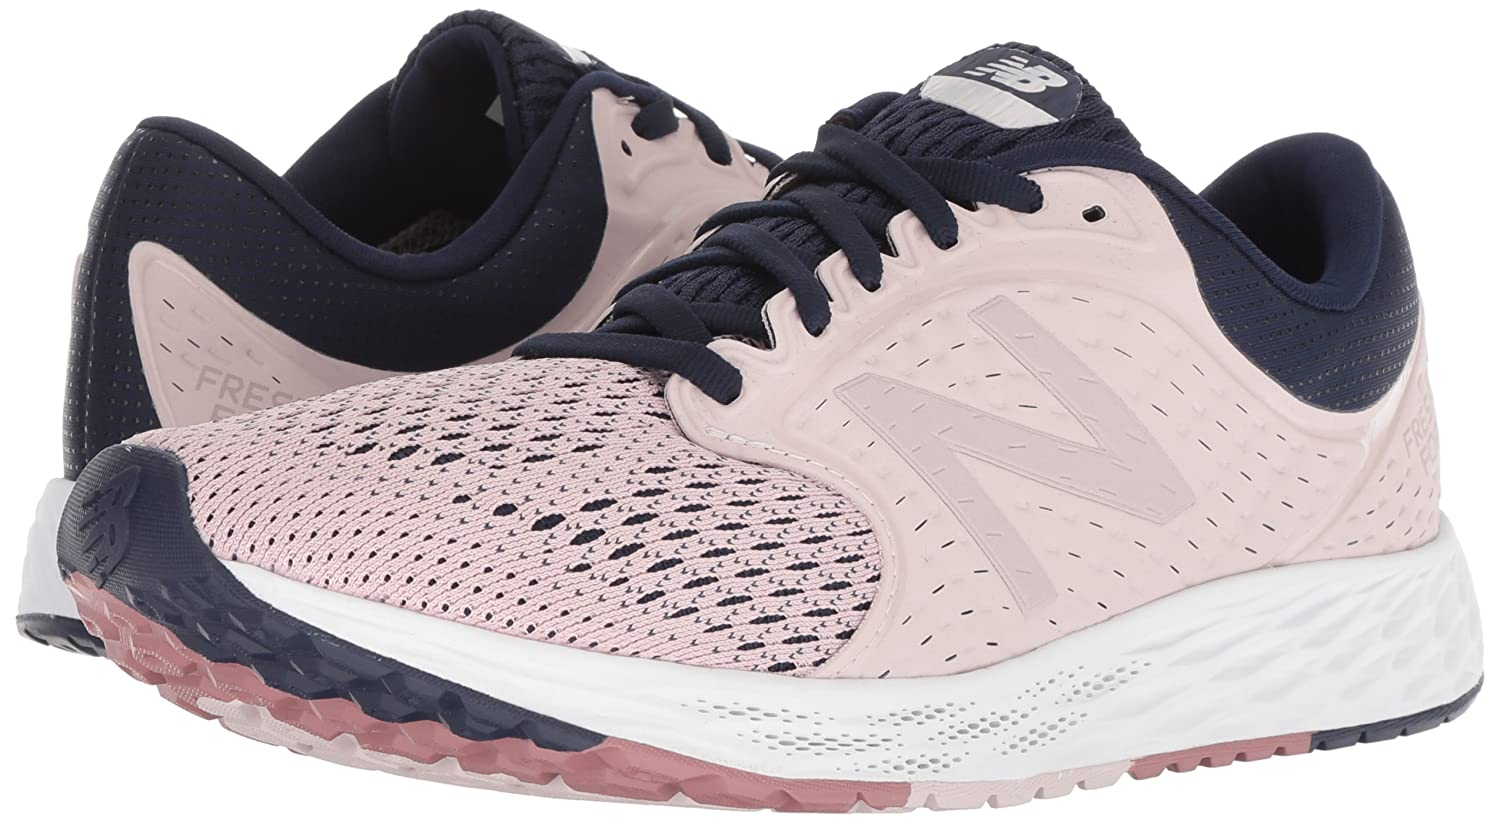 New Balance Women's Zante V4 Fresh Foam B(M) Running Shoe B075R755DL 6 B(M) Foam US|Light Pink 57b086